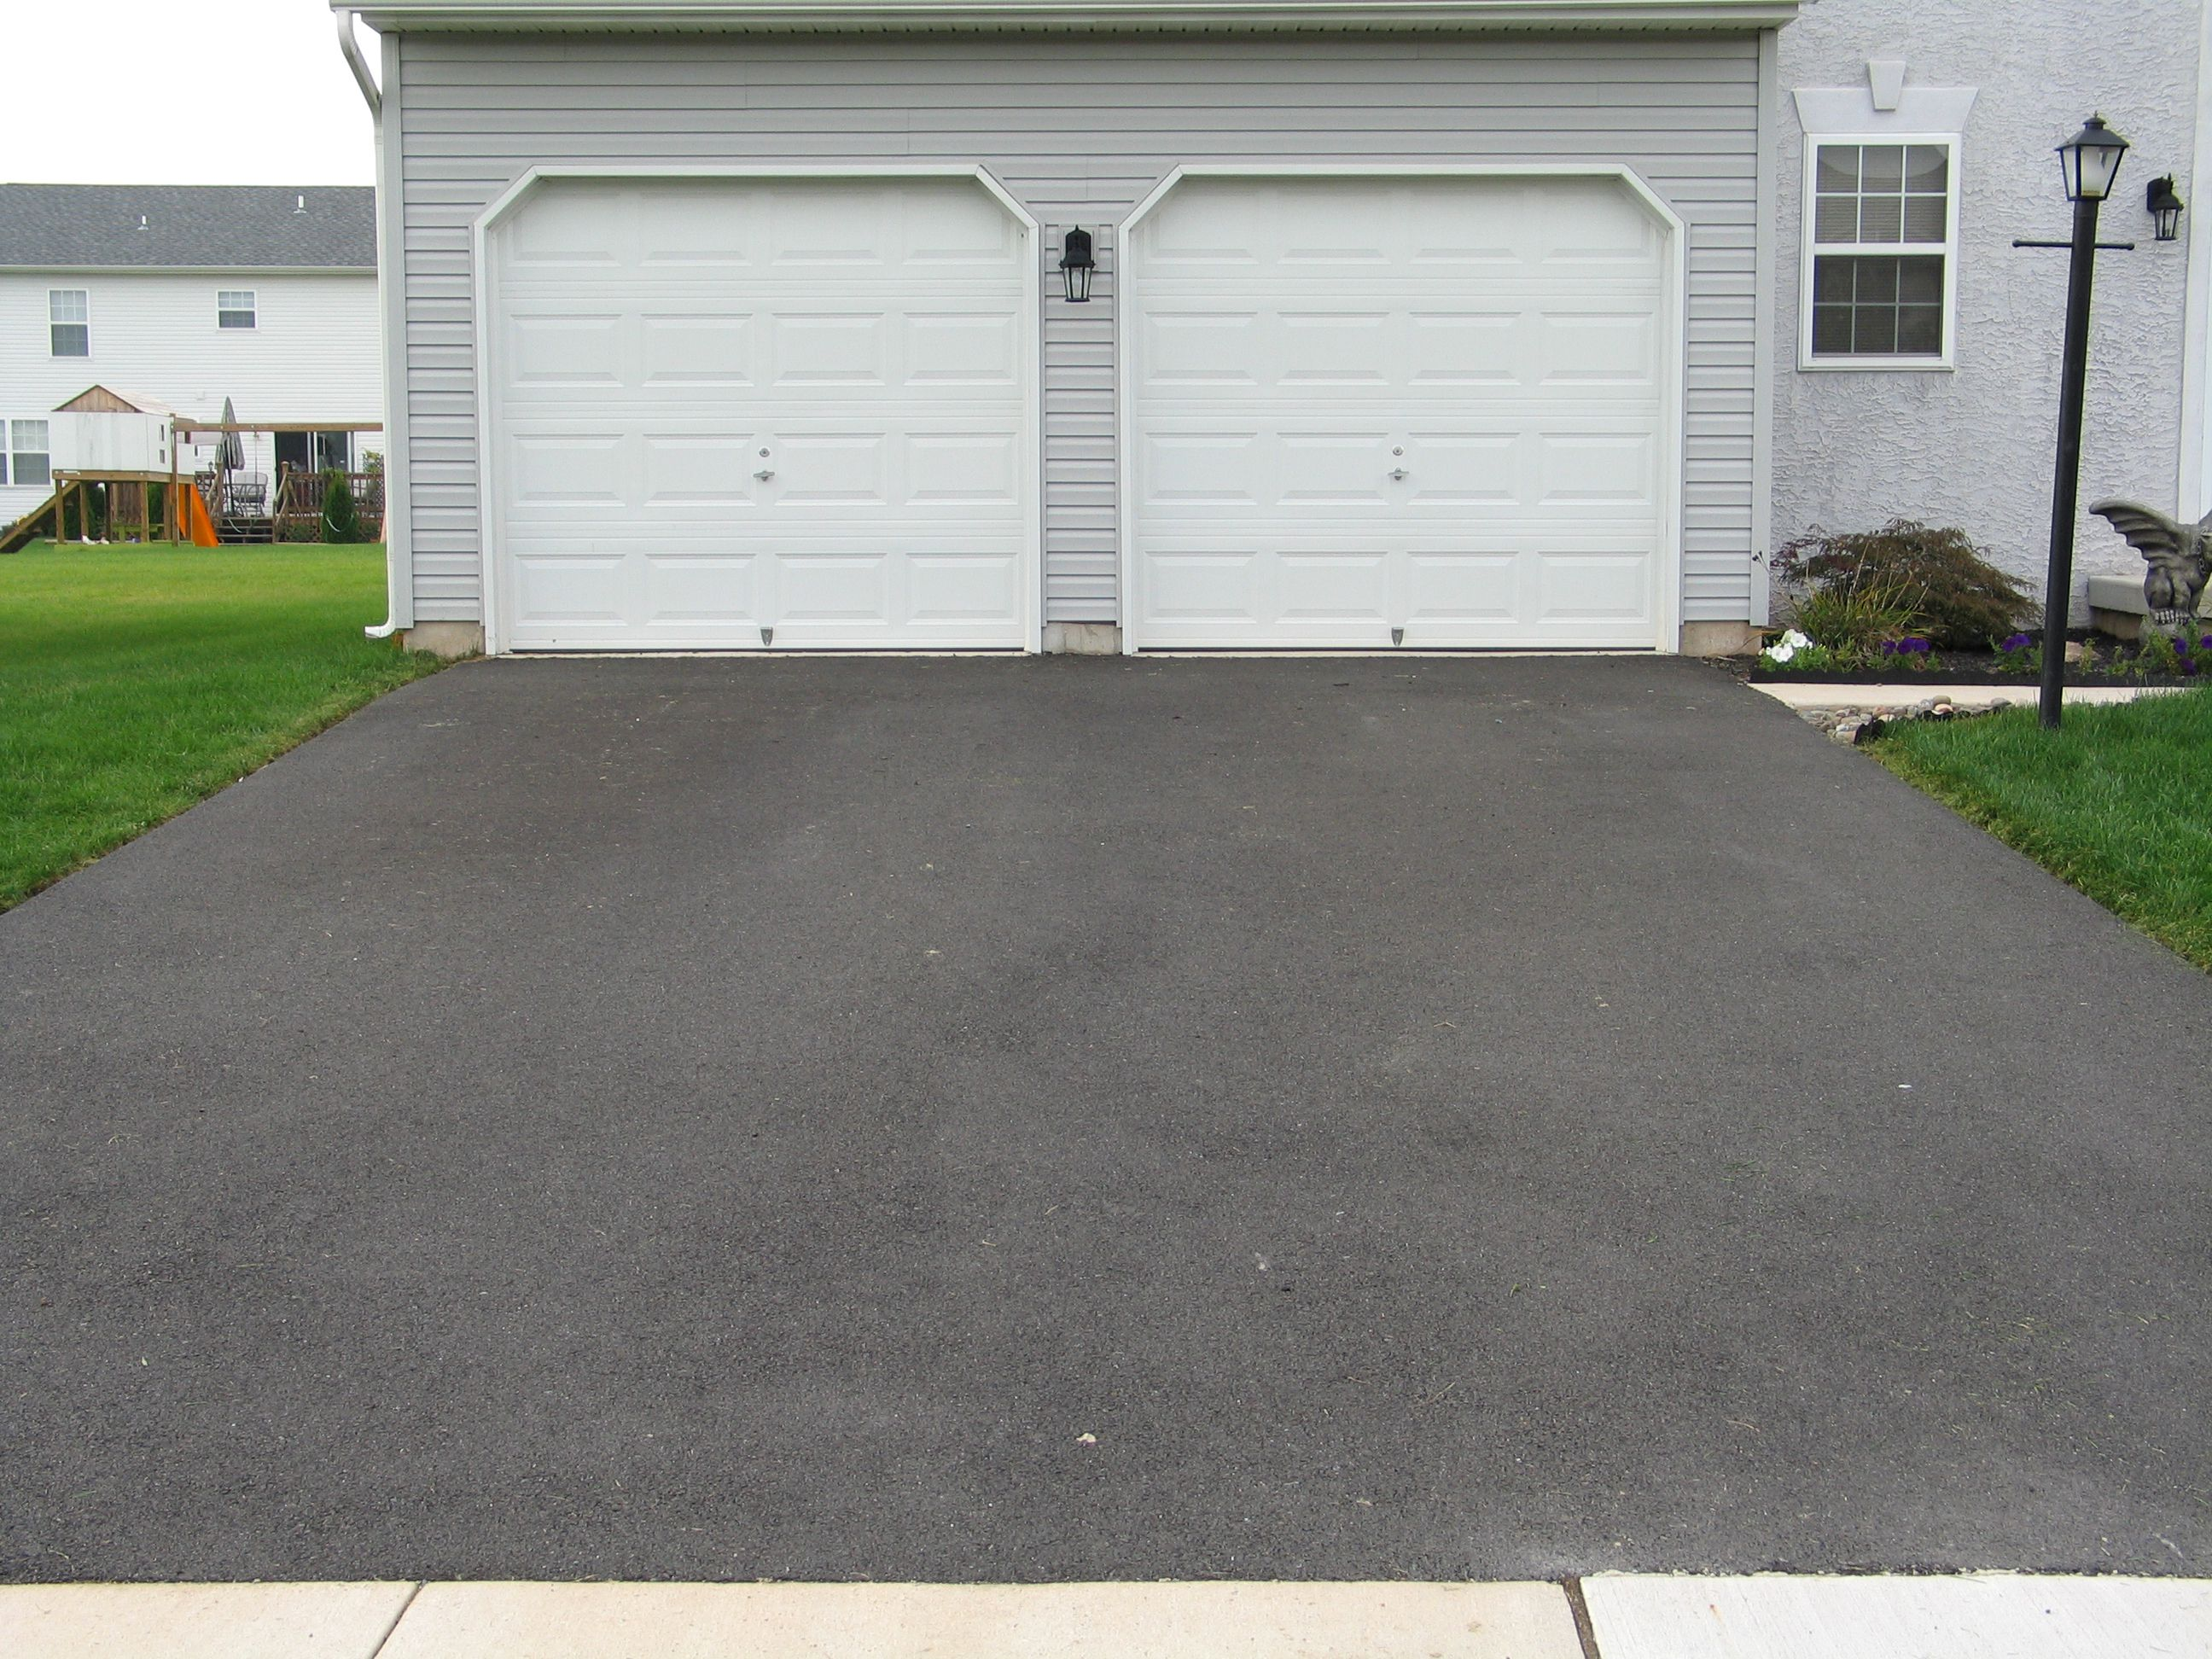 Seal Coating Asphalt Pavement: Benefits, Costs, Tips